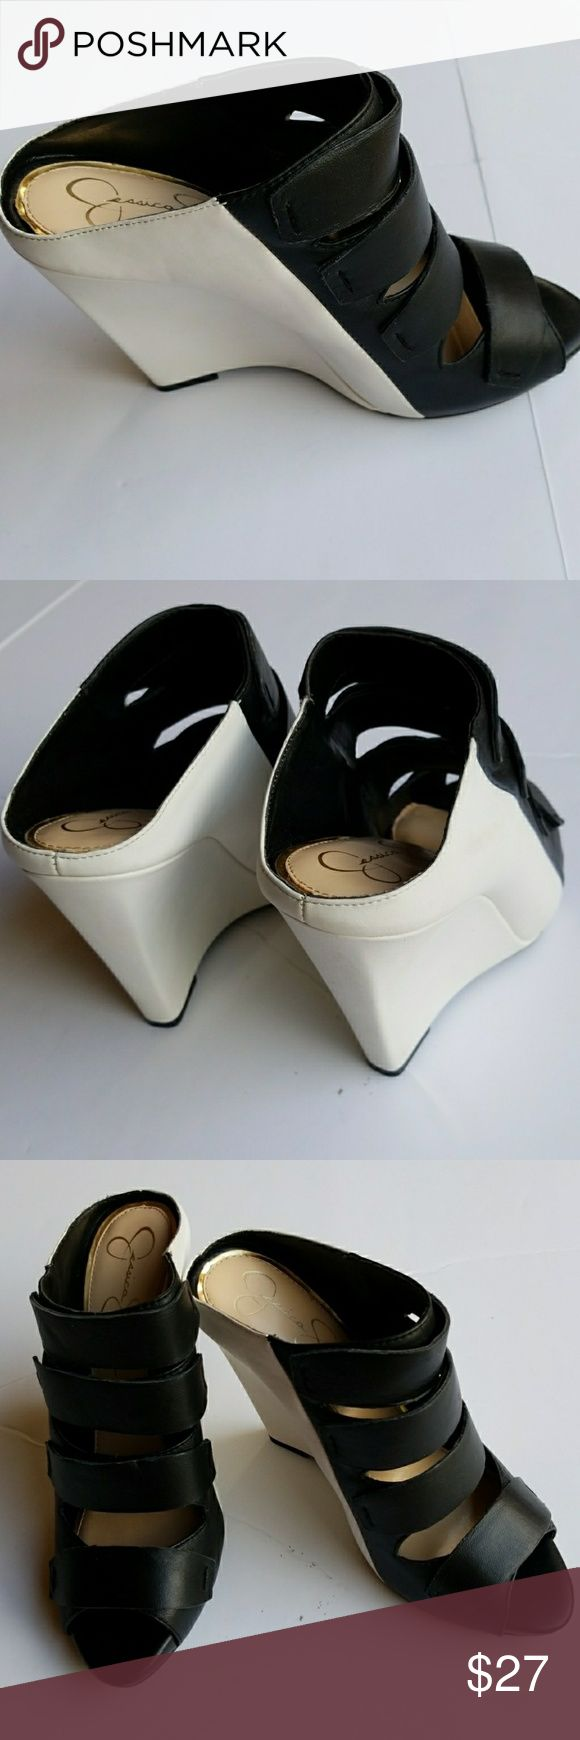 "Jessica Simpson  black/ white wedge shoes size 8 Chic black and white  shoes.  New store display . Heel 4.5"" Leather/man made upper.   📍📌📬Add my closet to your favorite for new arrivals. I add new items to my closet every week.  ❌🚫No trading. ❌🚫 No lowballing ✔Offers through offer button only.  Reasonable offers please 💖 Jessica Simpson Shoes Wedges"